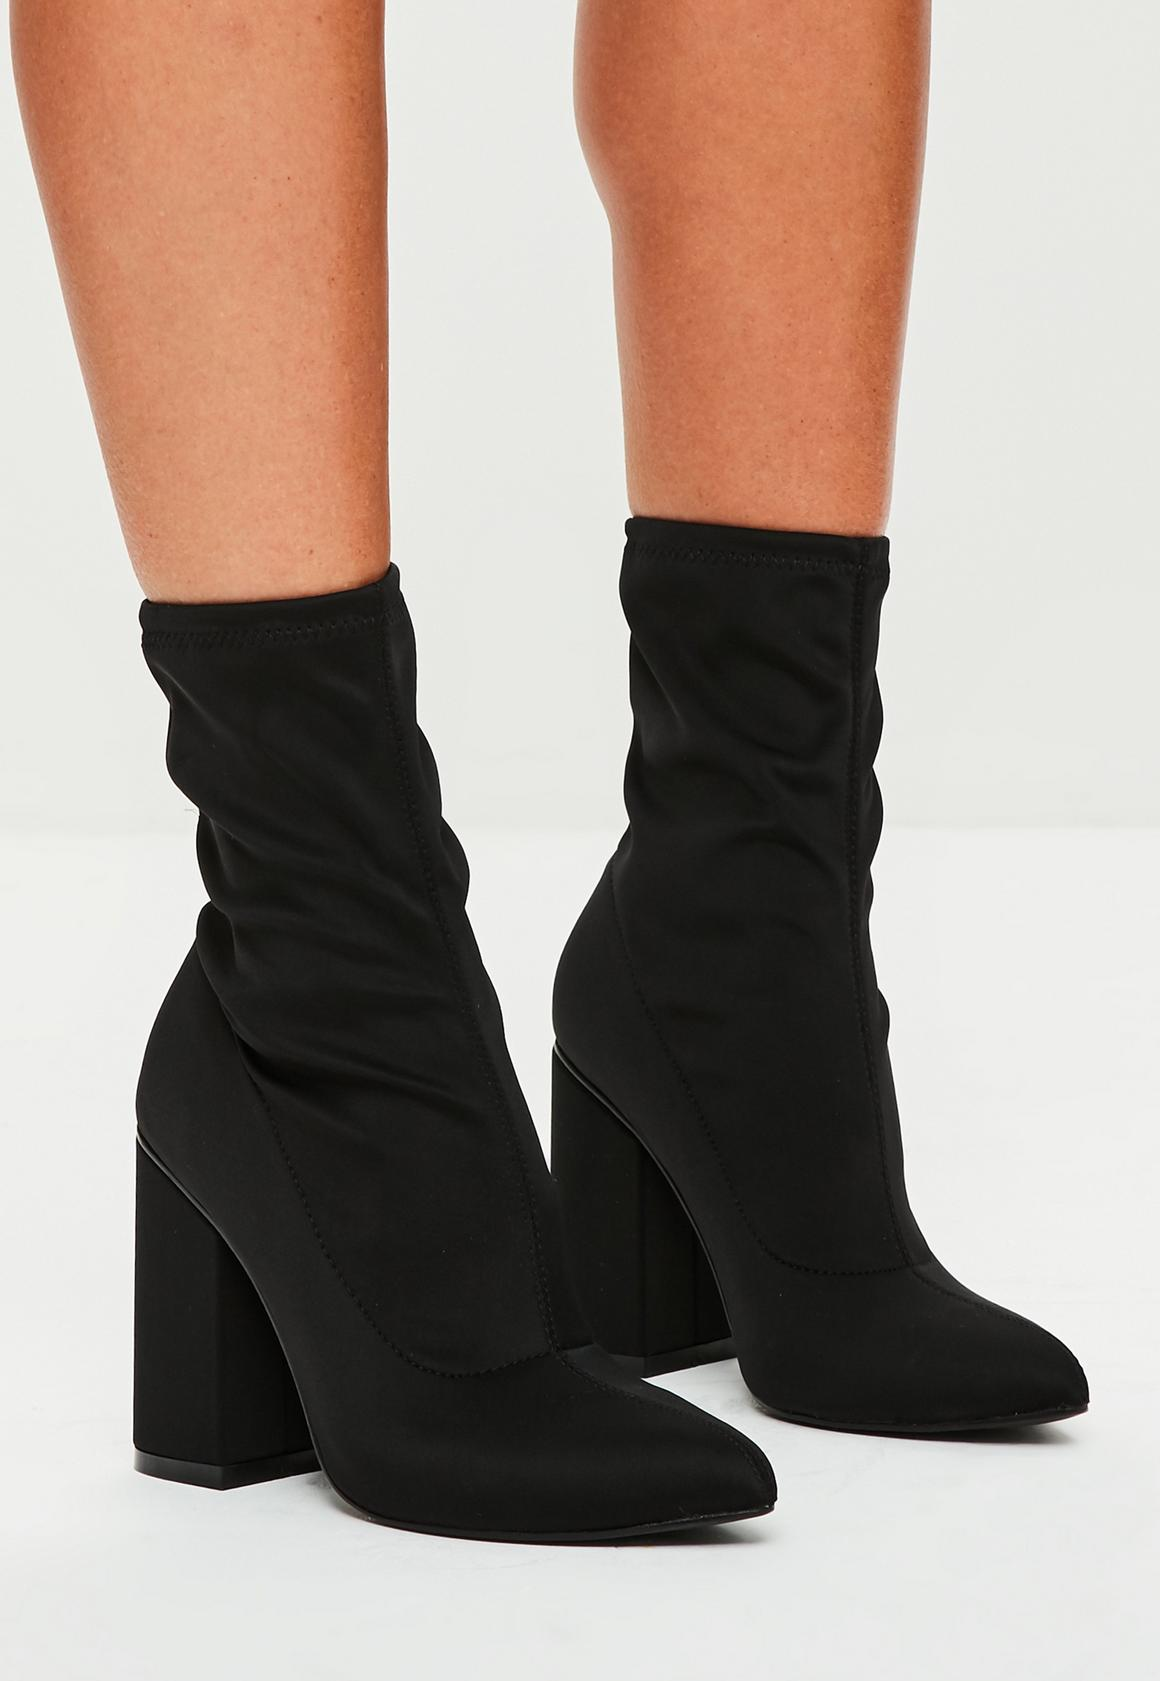 bottines noires pointues à talon carré | missguided